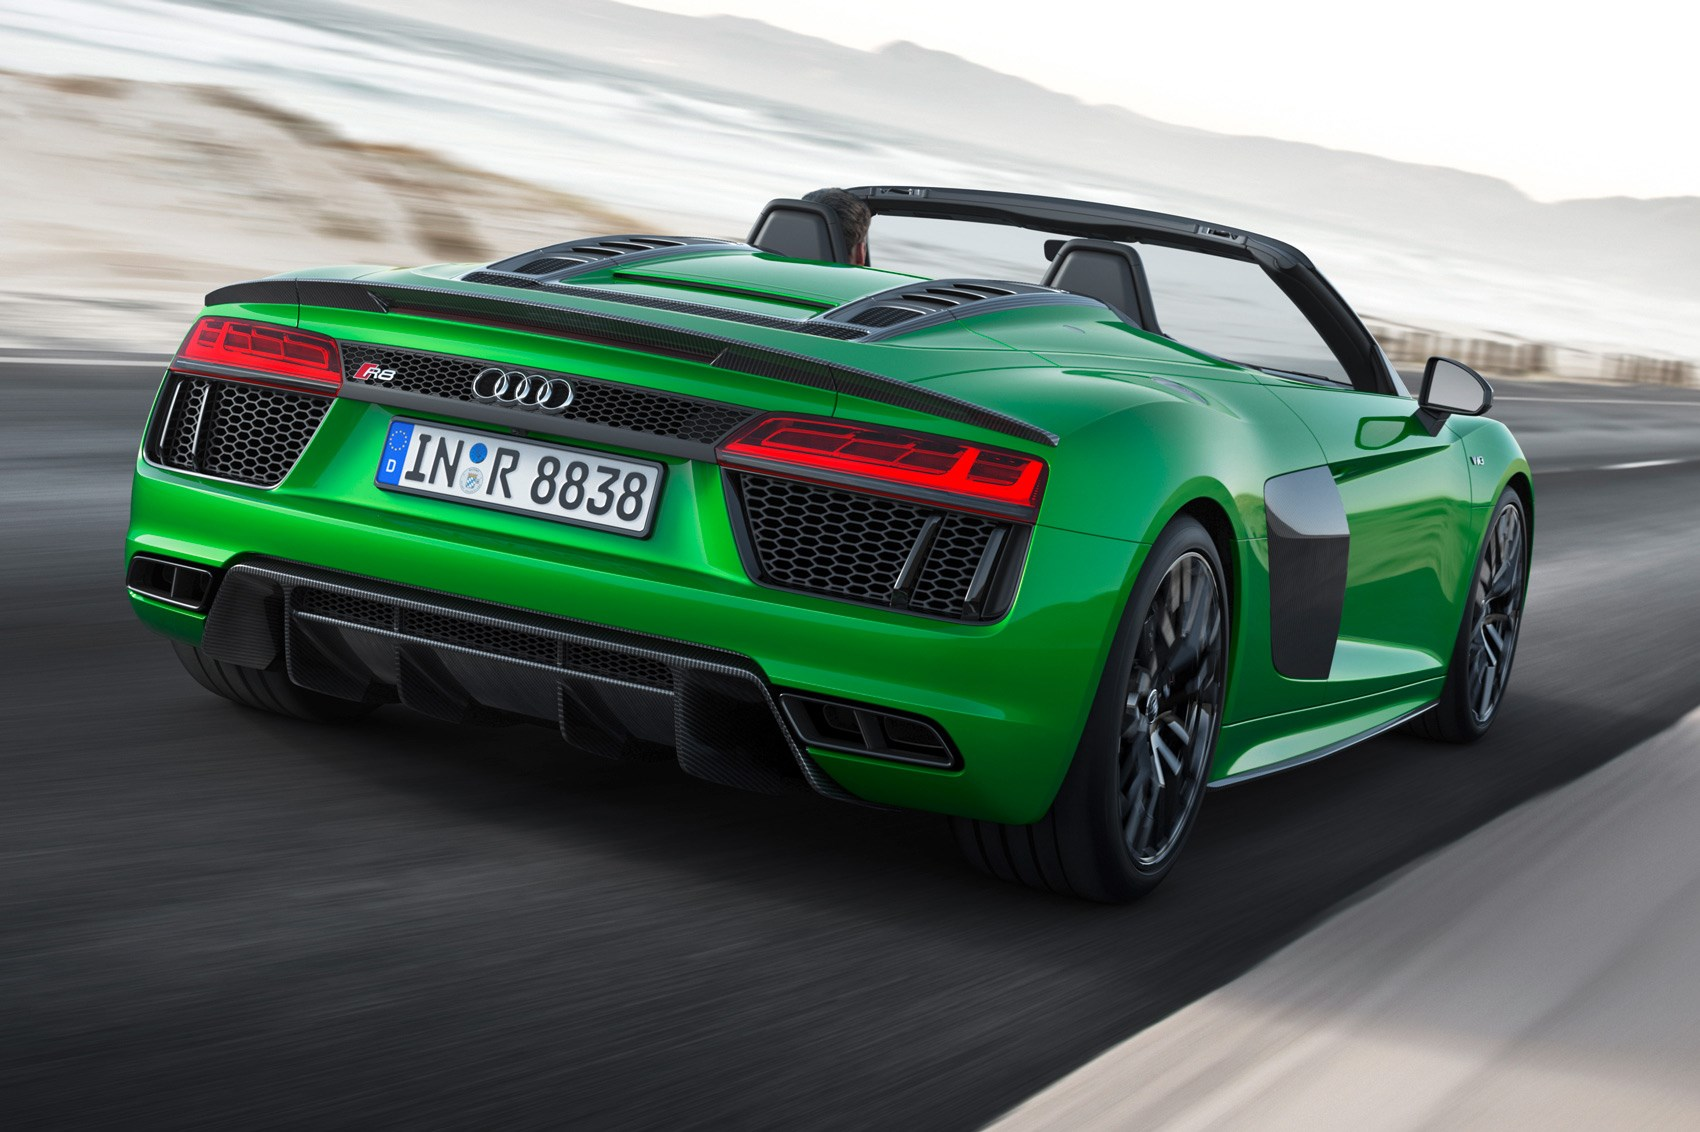 Audi R8 V10 Plus announced